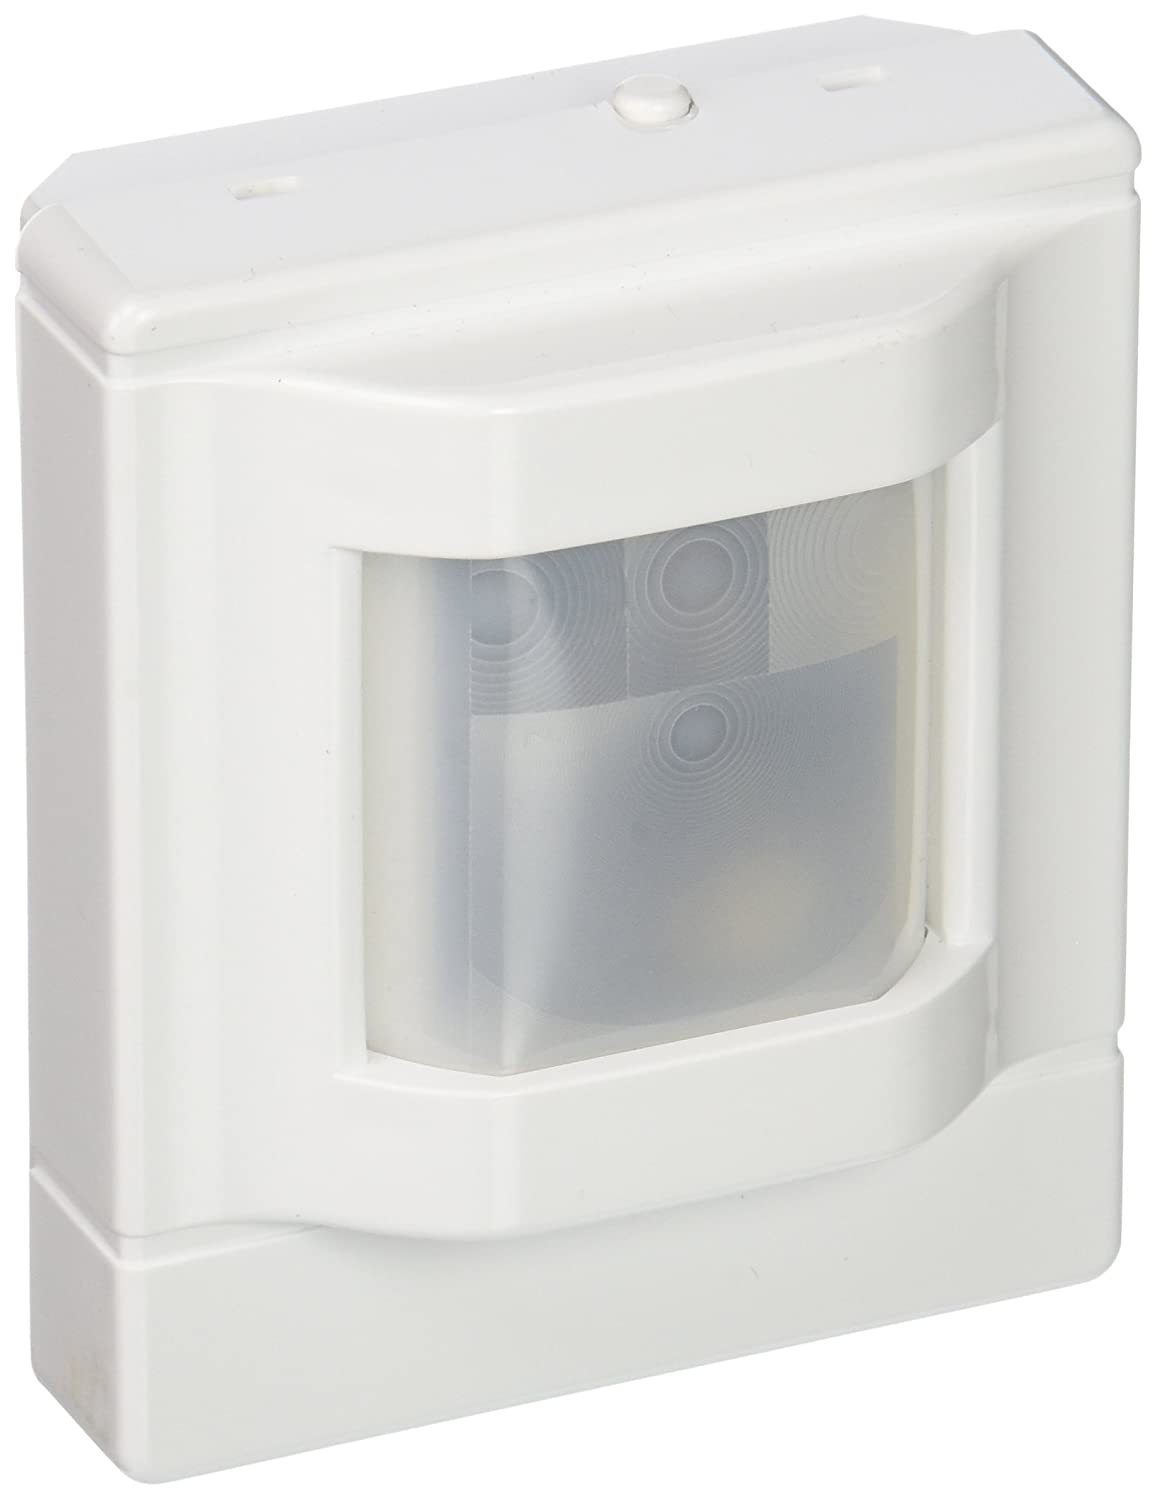 Sensor Switch HW13 Occupancy or Motion Sensing Switch Fluorescent Light Mount Flush Lights of America GE Camco Good Earth Lighting Osram LED Compact Fluorescent Rustic Cottage Modern Traditional